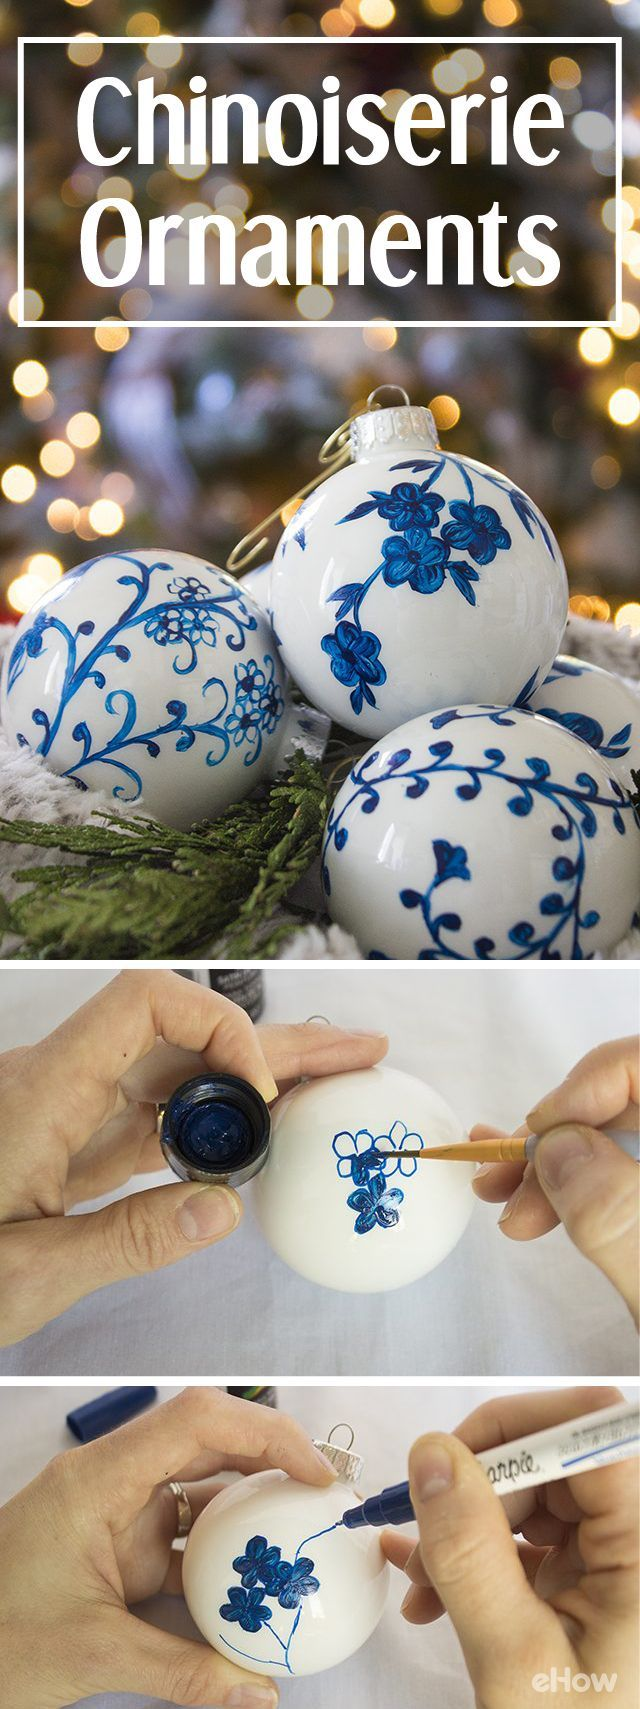 Ornaments with names on them - Beautiful Diy Chinoiserie Ornaments